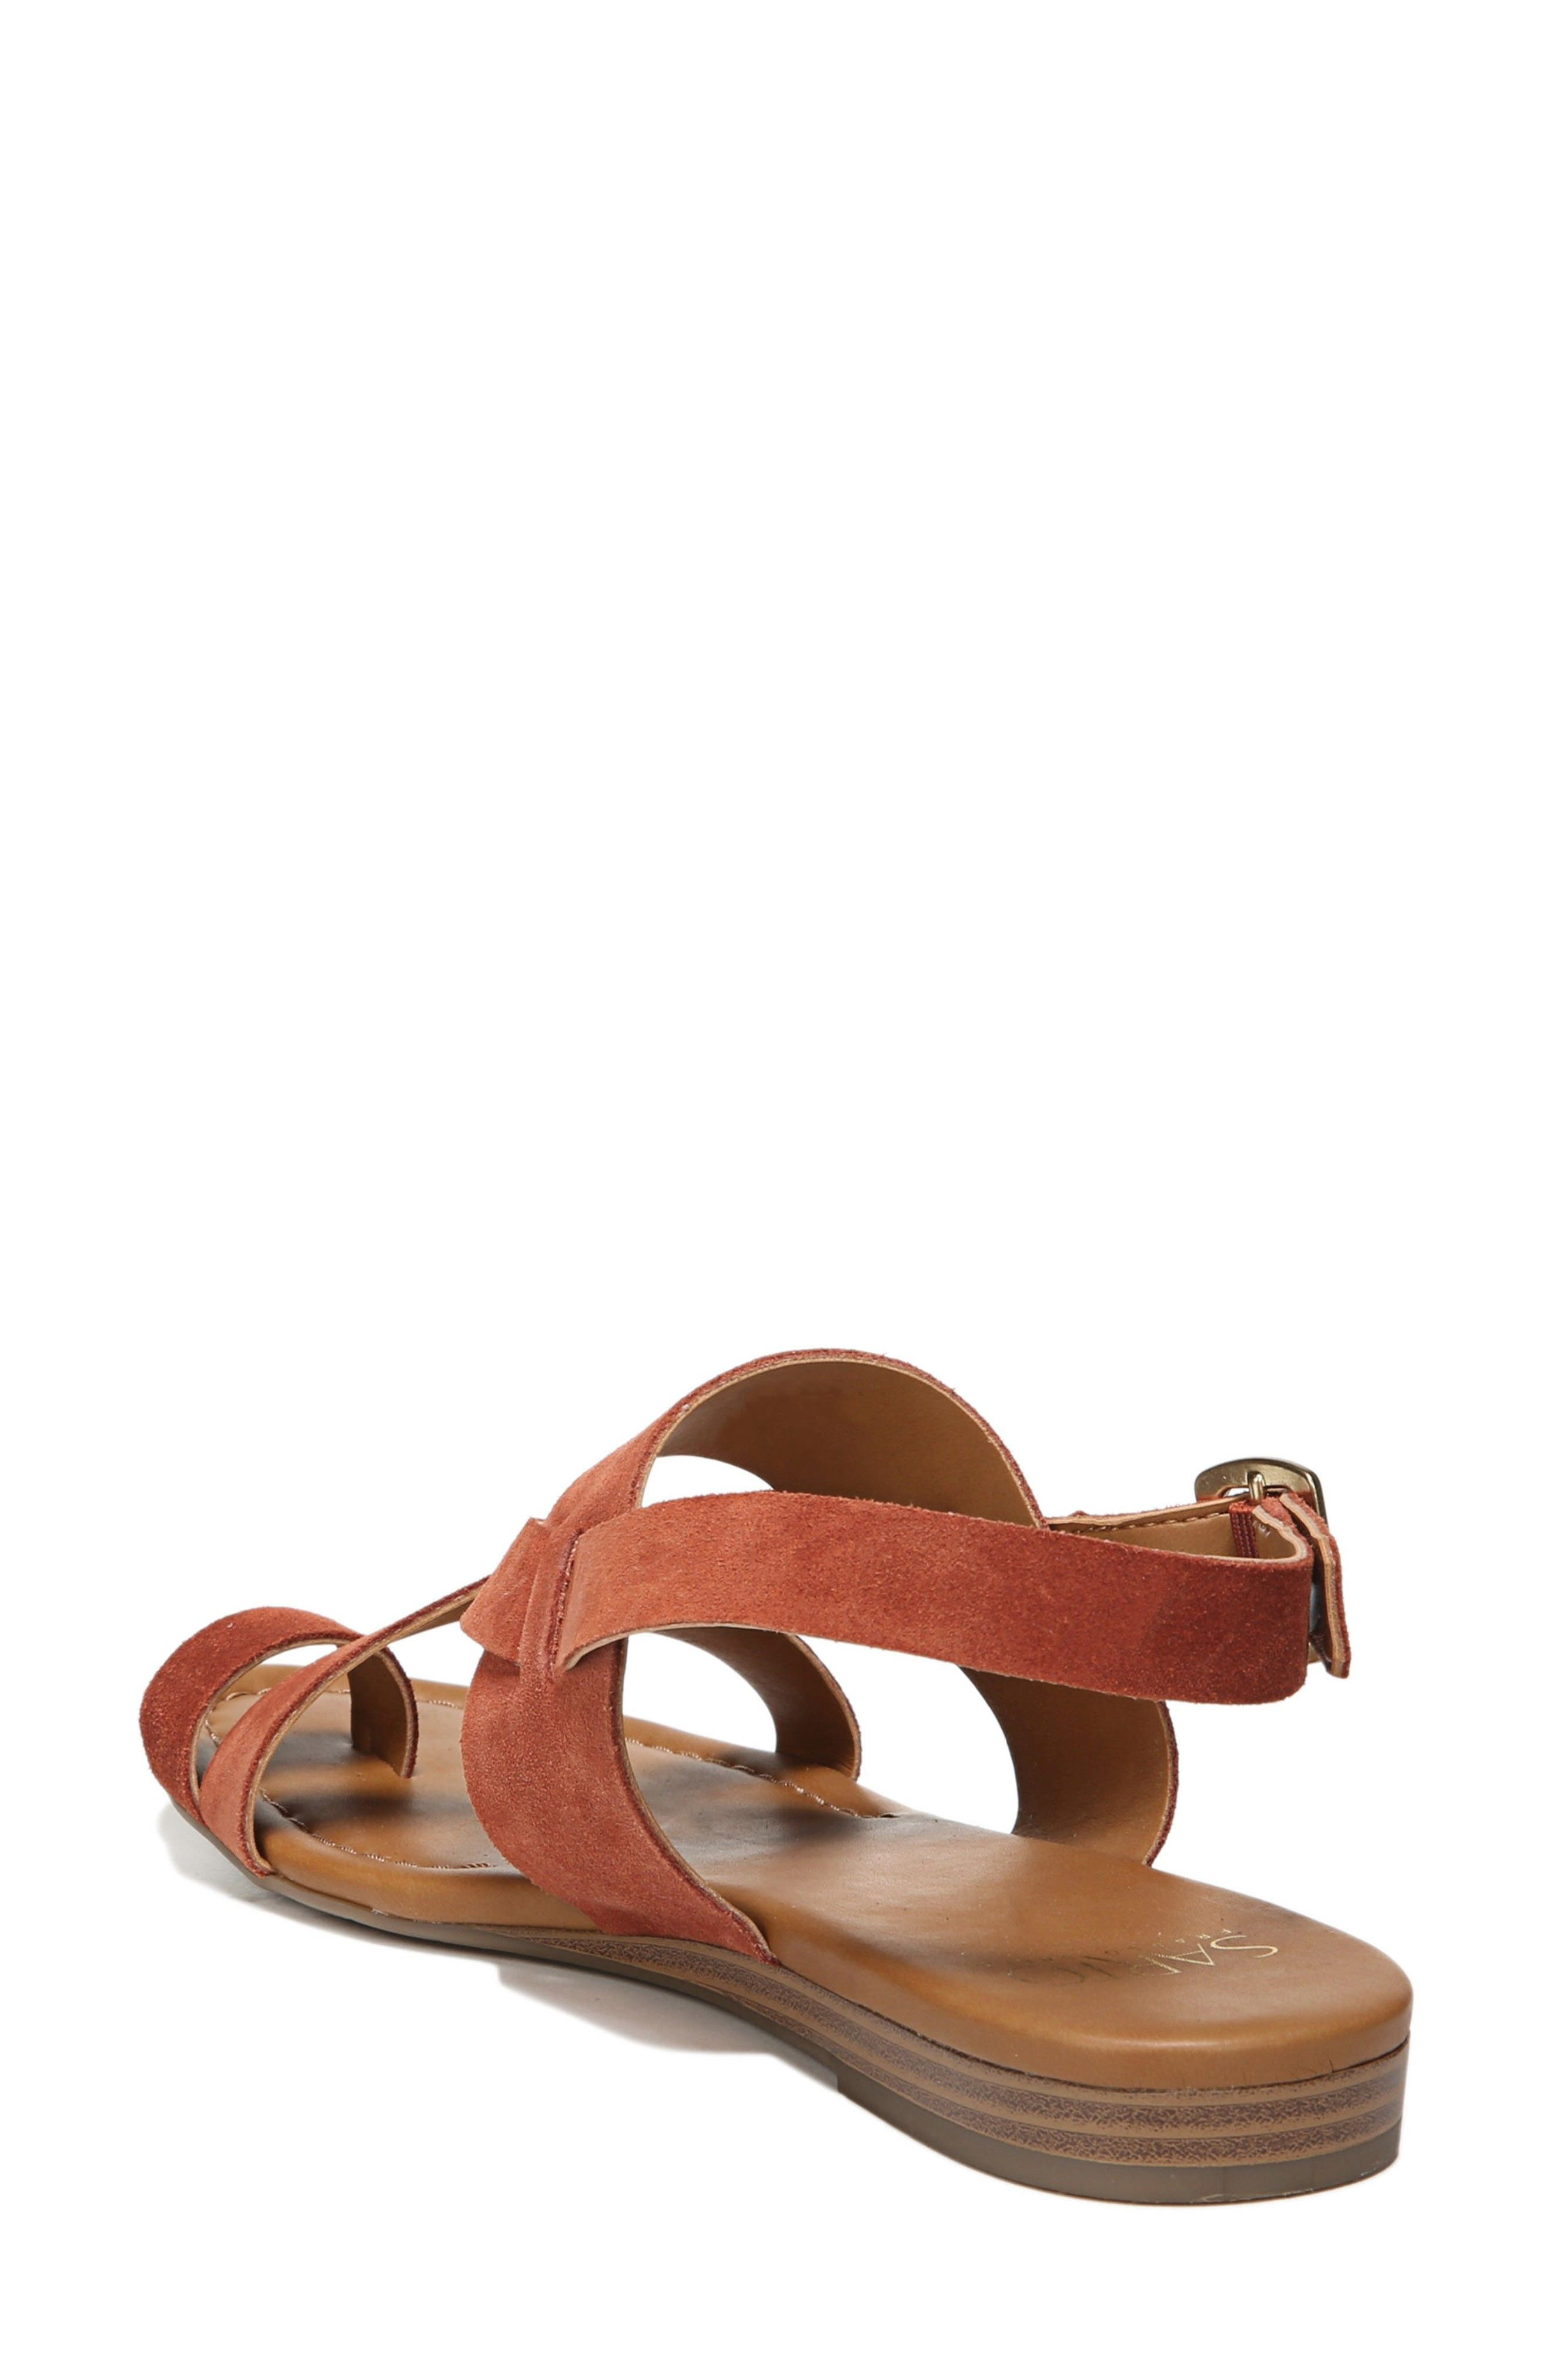 Alternate Image 2  - SARTO by Franco Sarto Gia Sandal (Women)